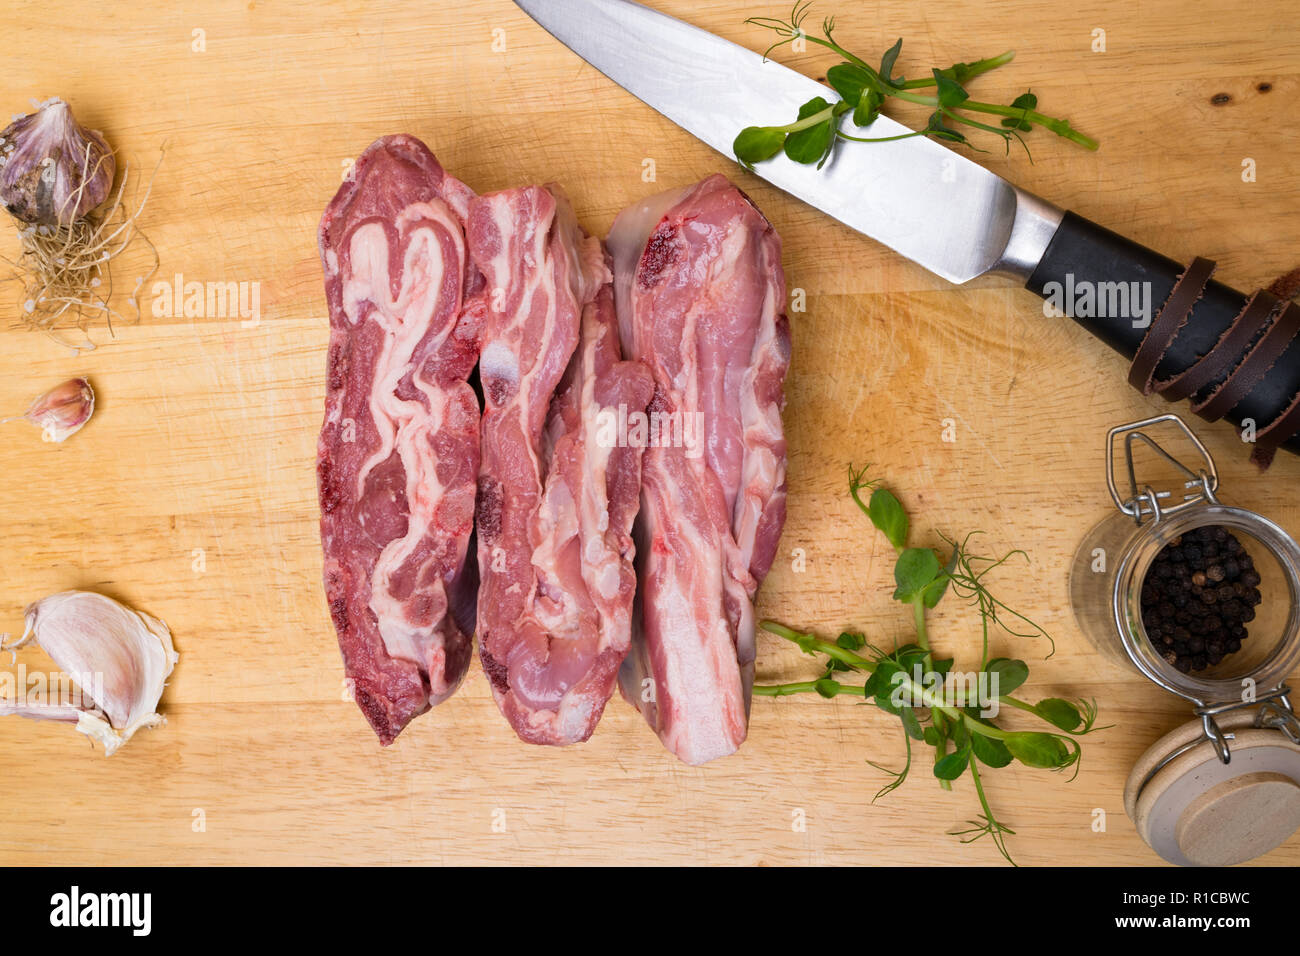 Raw fresh Lamb Meat with garlic, black pepper, greens and knife on wooden background - Stock Image